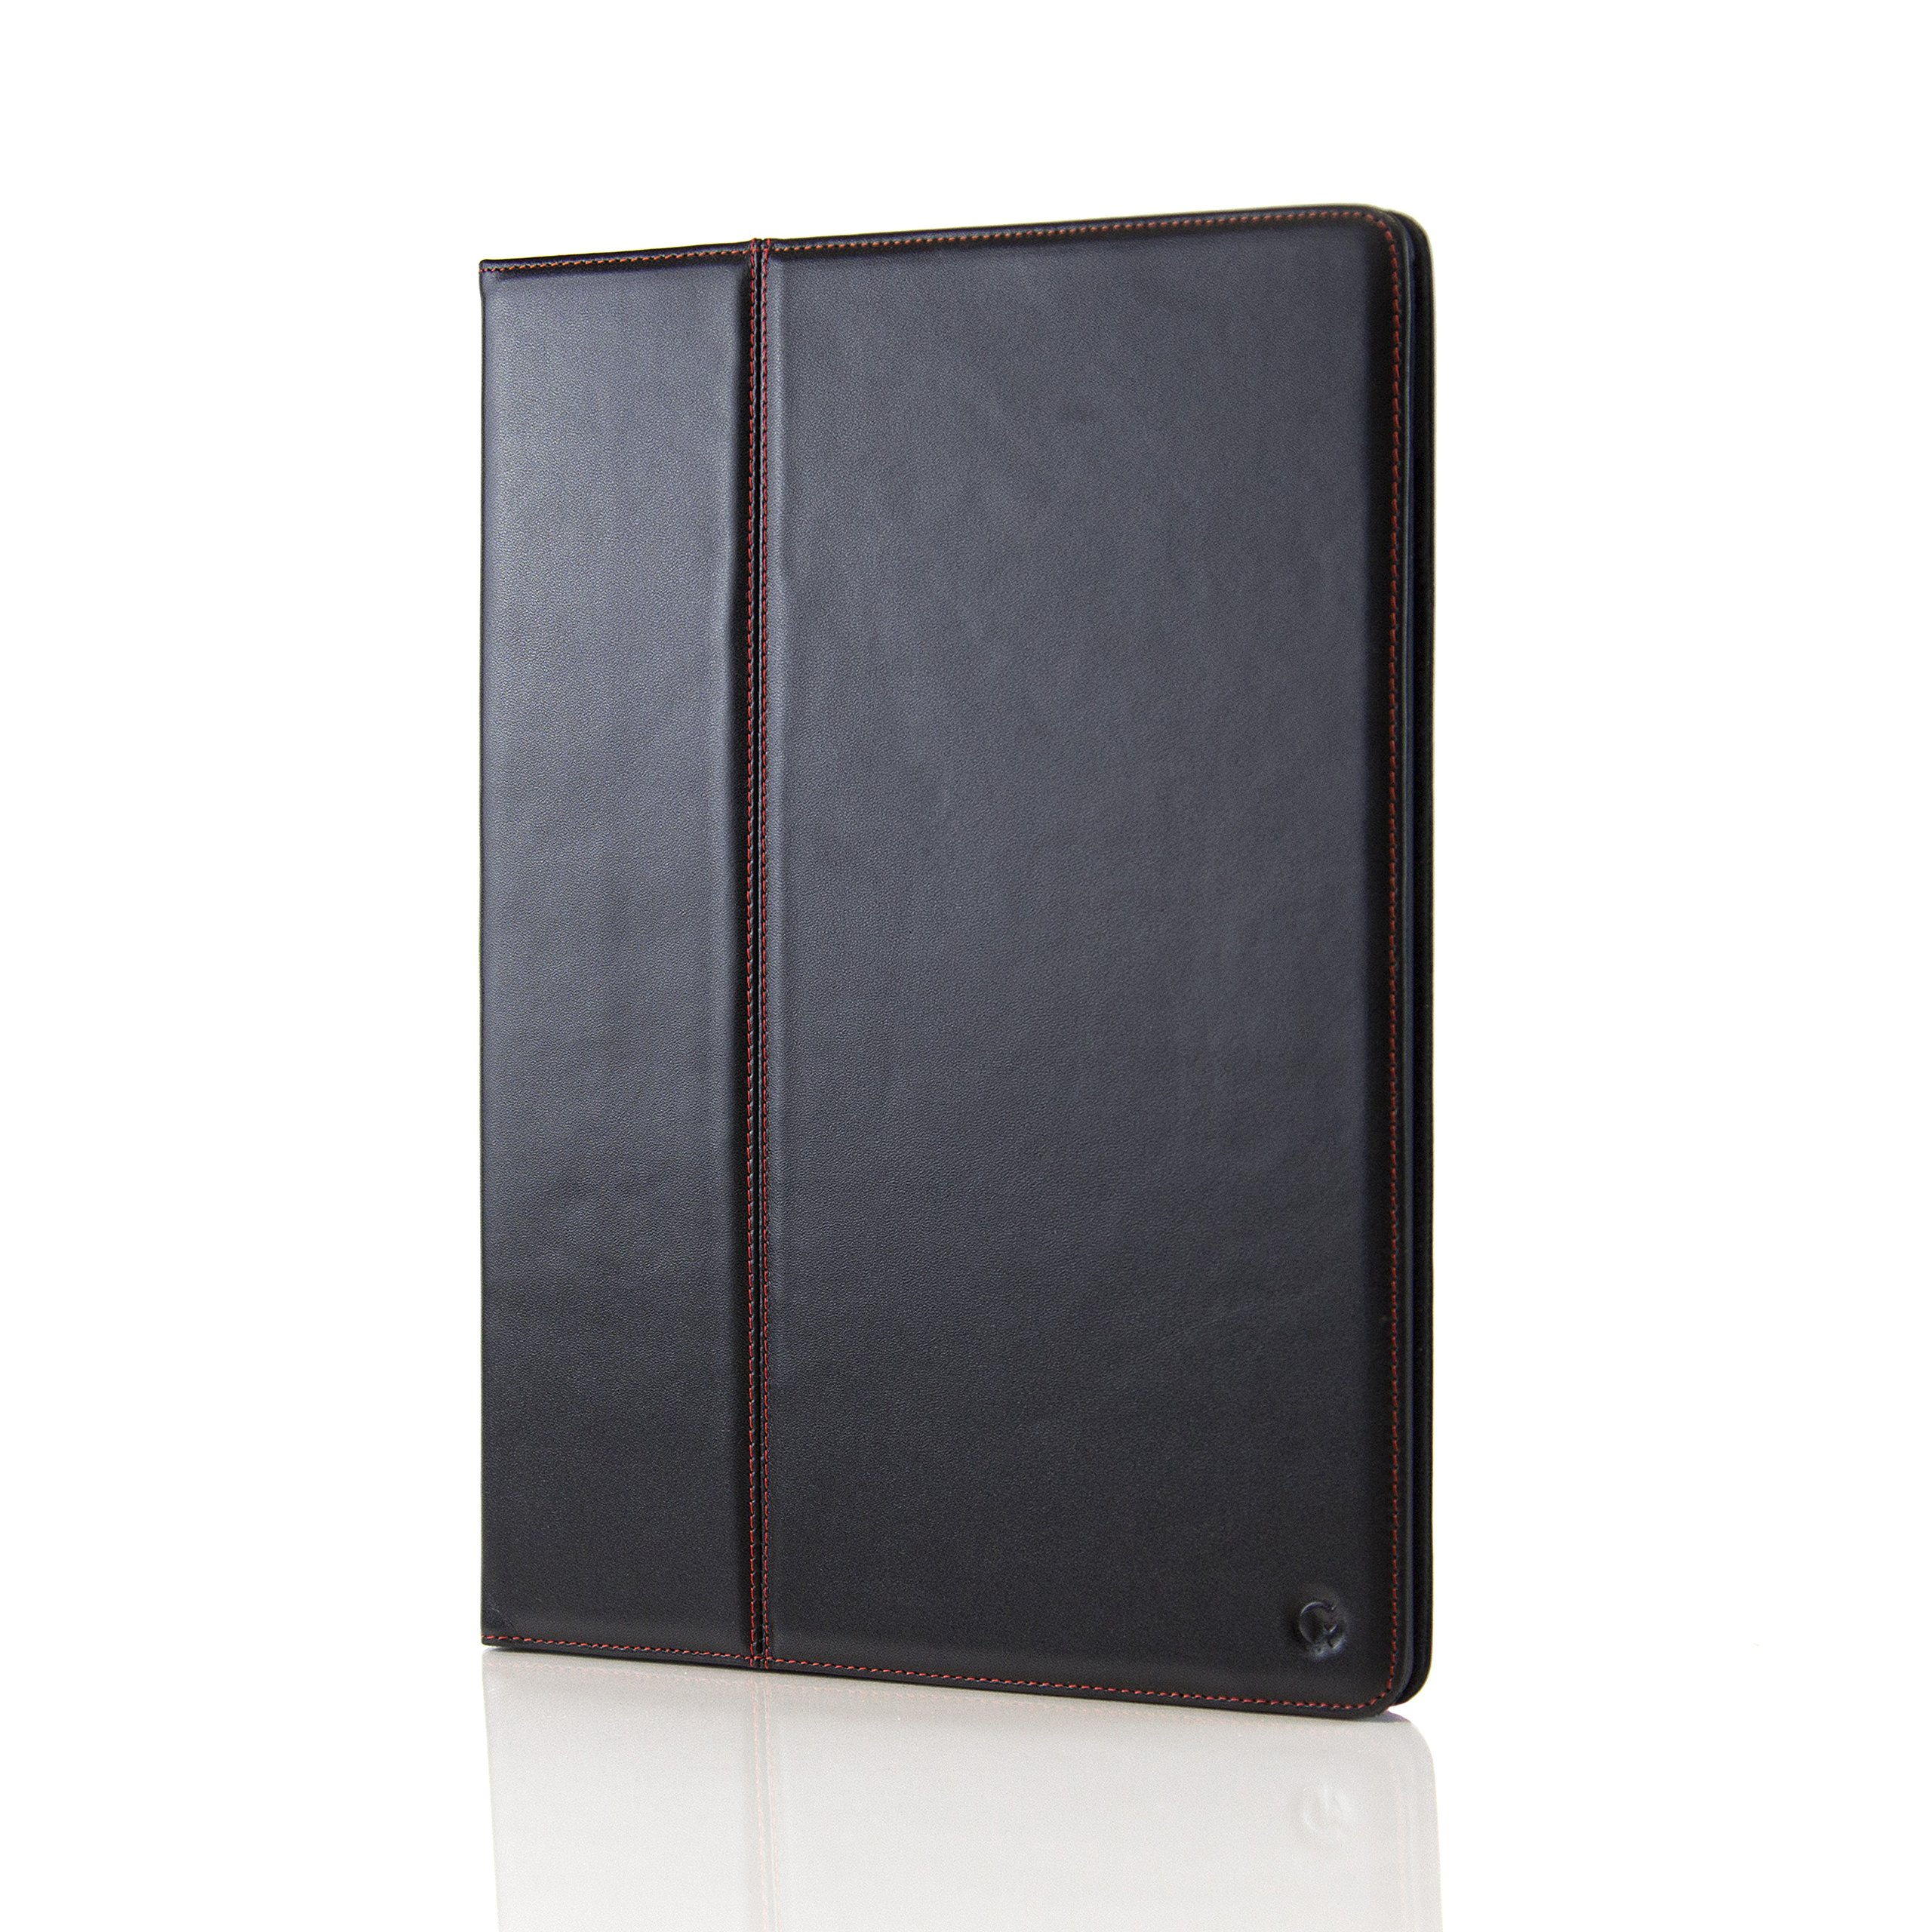 Casemade Apple iPad Pro 12.9 (1st Gen 2015 Model) Premium Grade Luxury Real Italian Leather Cover / Freestanding Case in Black (Compatible Model Numbers: A1584, A1652)